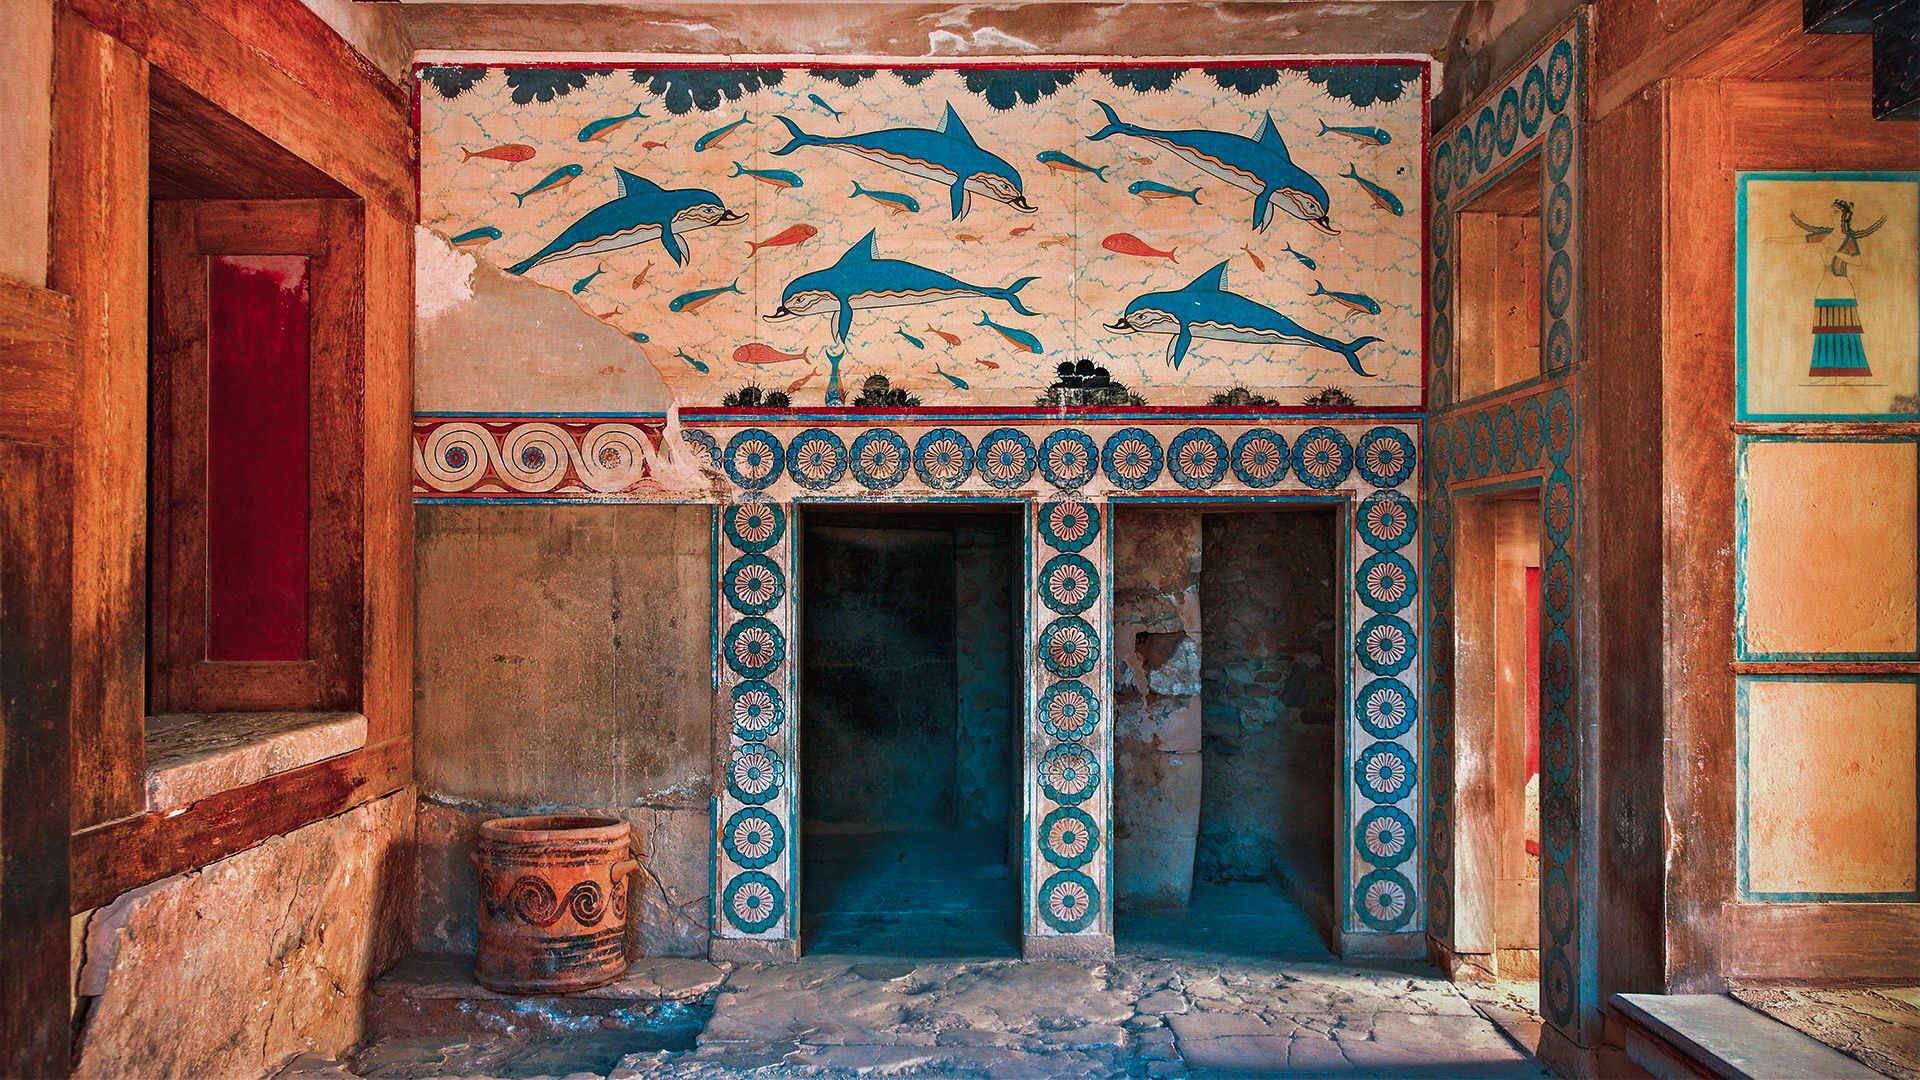 A room at the world-renowned palace of Knossos